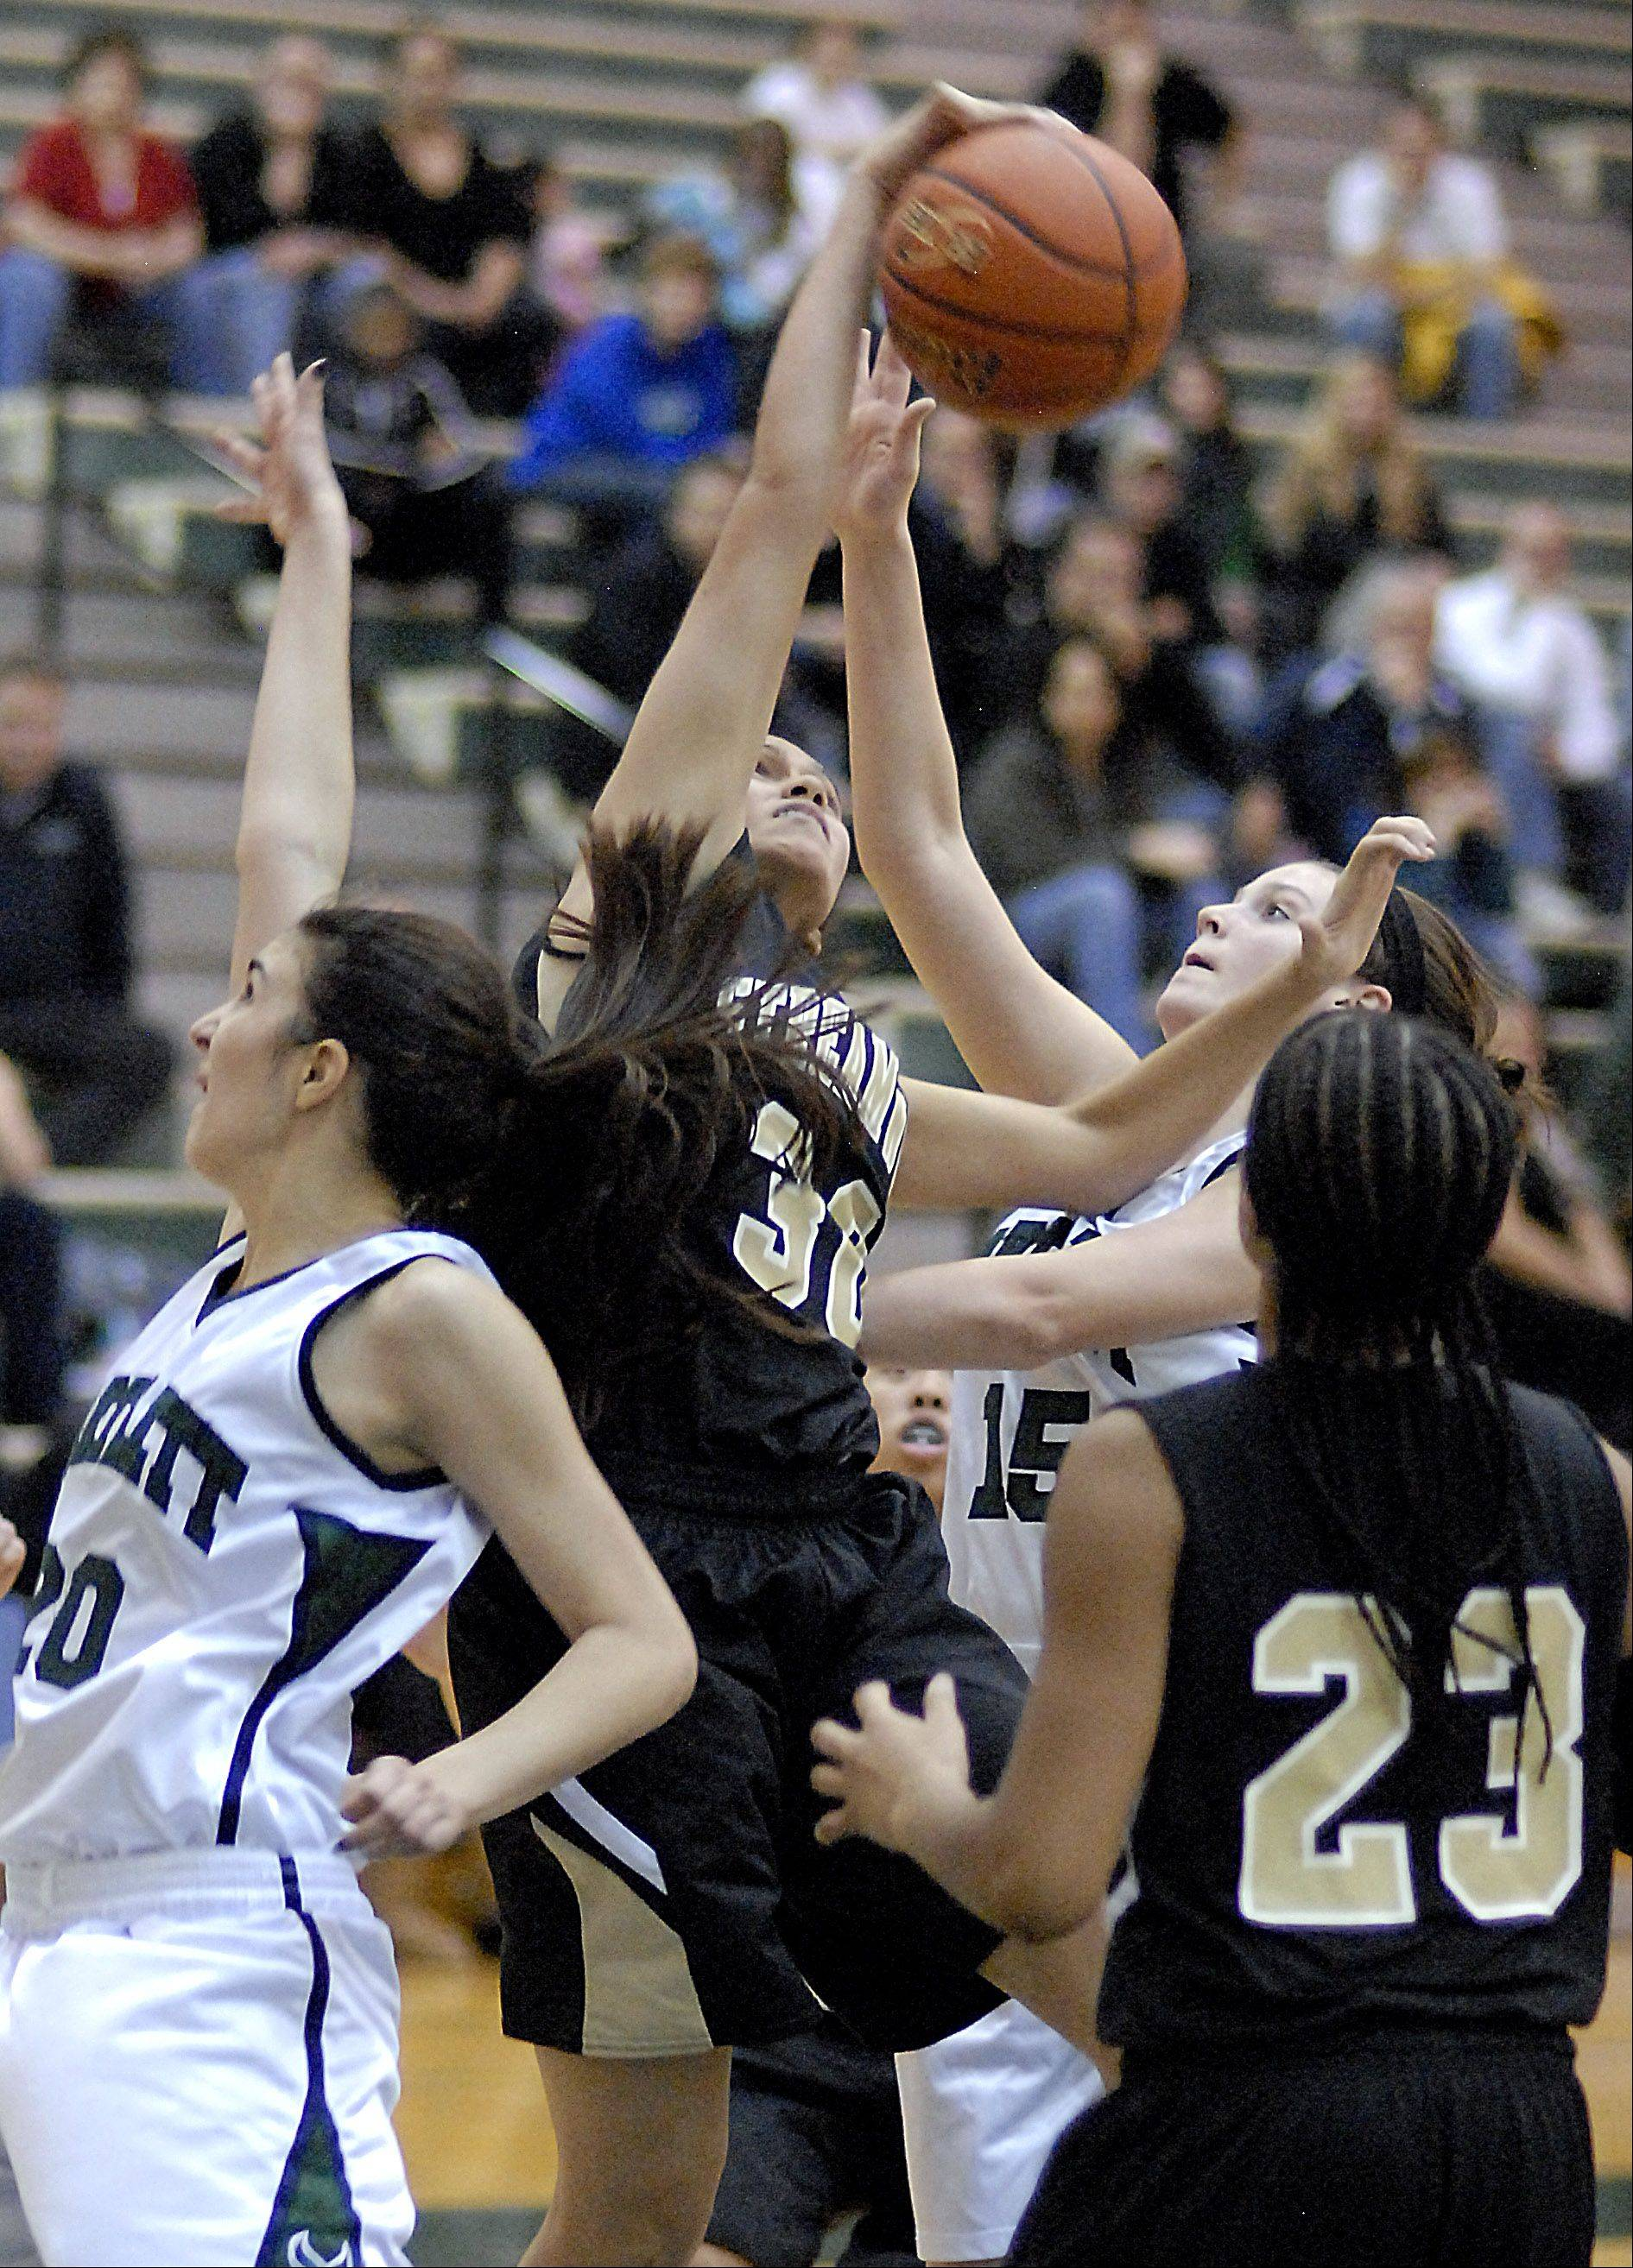 Streamwood's Jessica Cerda and Bartlett's Kaitlin Brohan fight for a rebound in the fourth quarter.